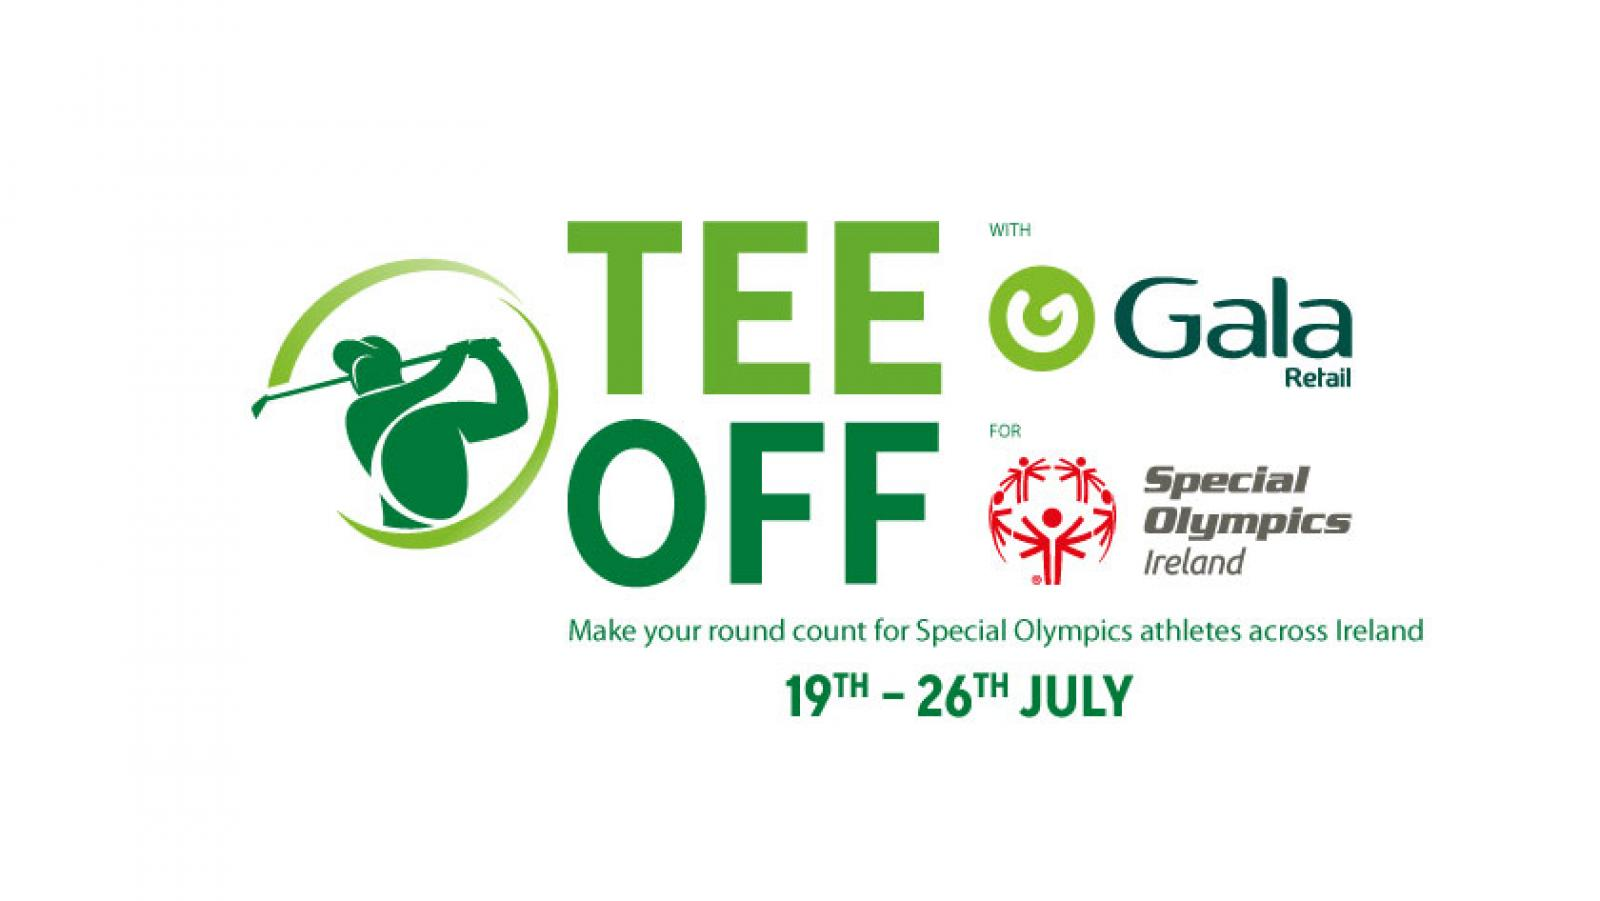 Tee off with Gala Retail